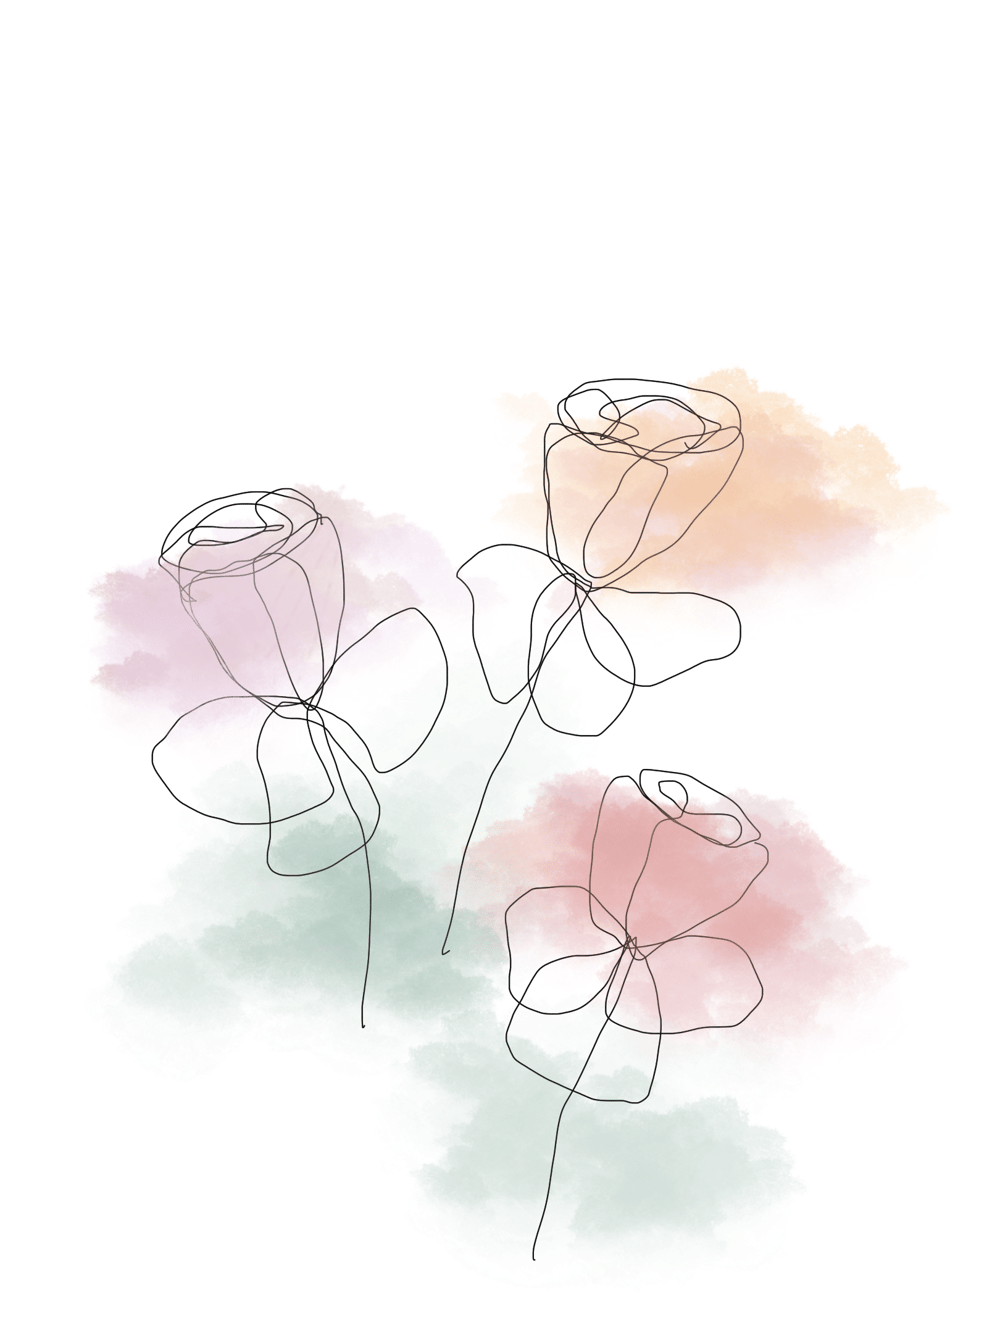 More Flowers - image 1 - student project